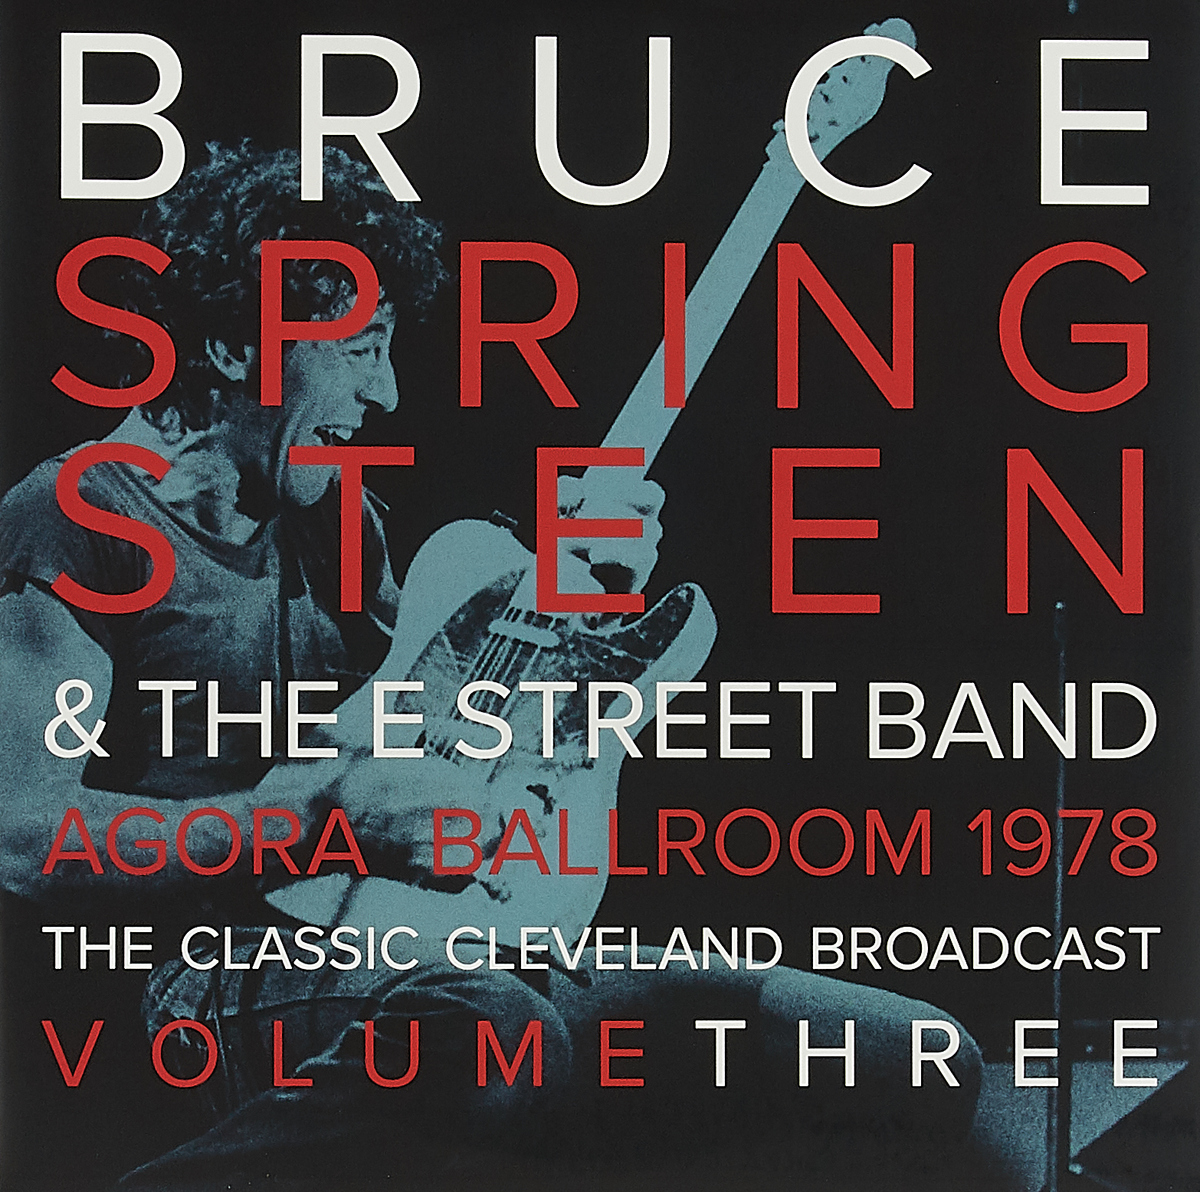 Брюс Спрингстин Bruce Springsteen & The E-Street Band. Agora Ballroom 1978 - The Classic Cleveland Broadcast Volume Three (2 LP) брюс спрингстин bruce springsteen the wild the innocent and the e street shuffle lp